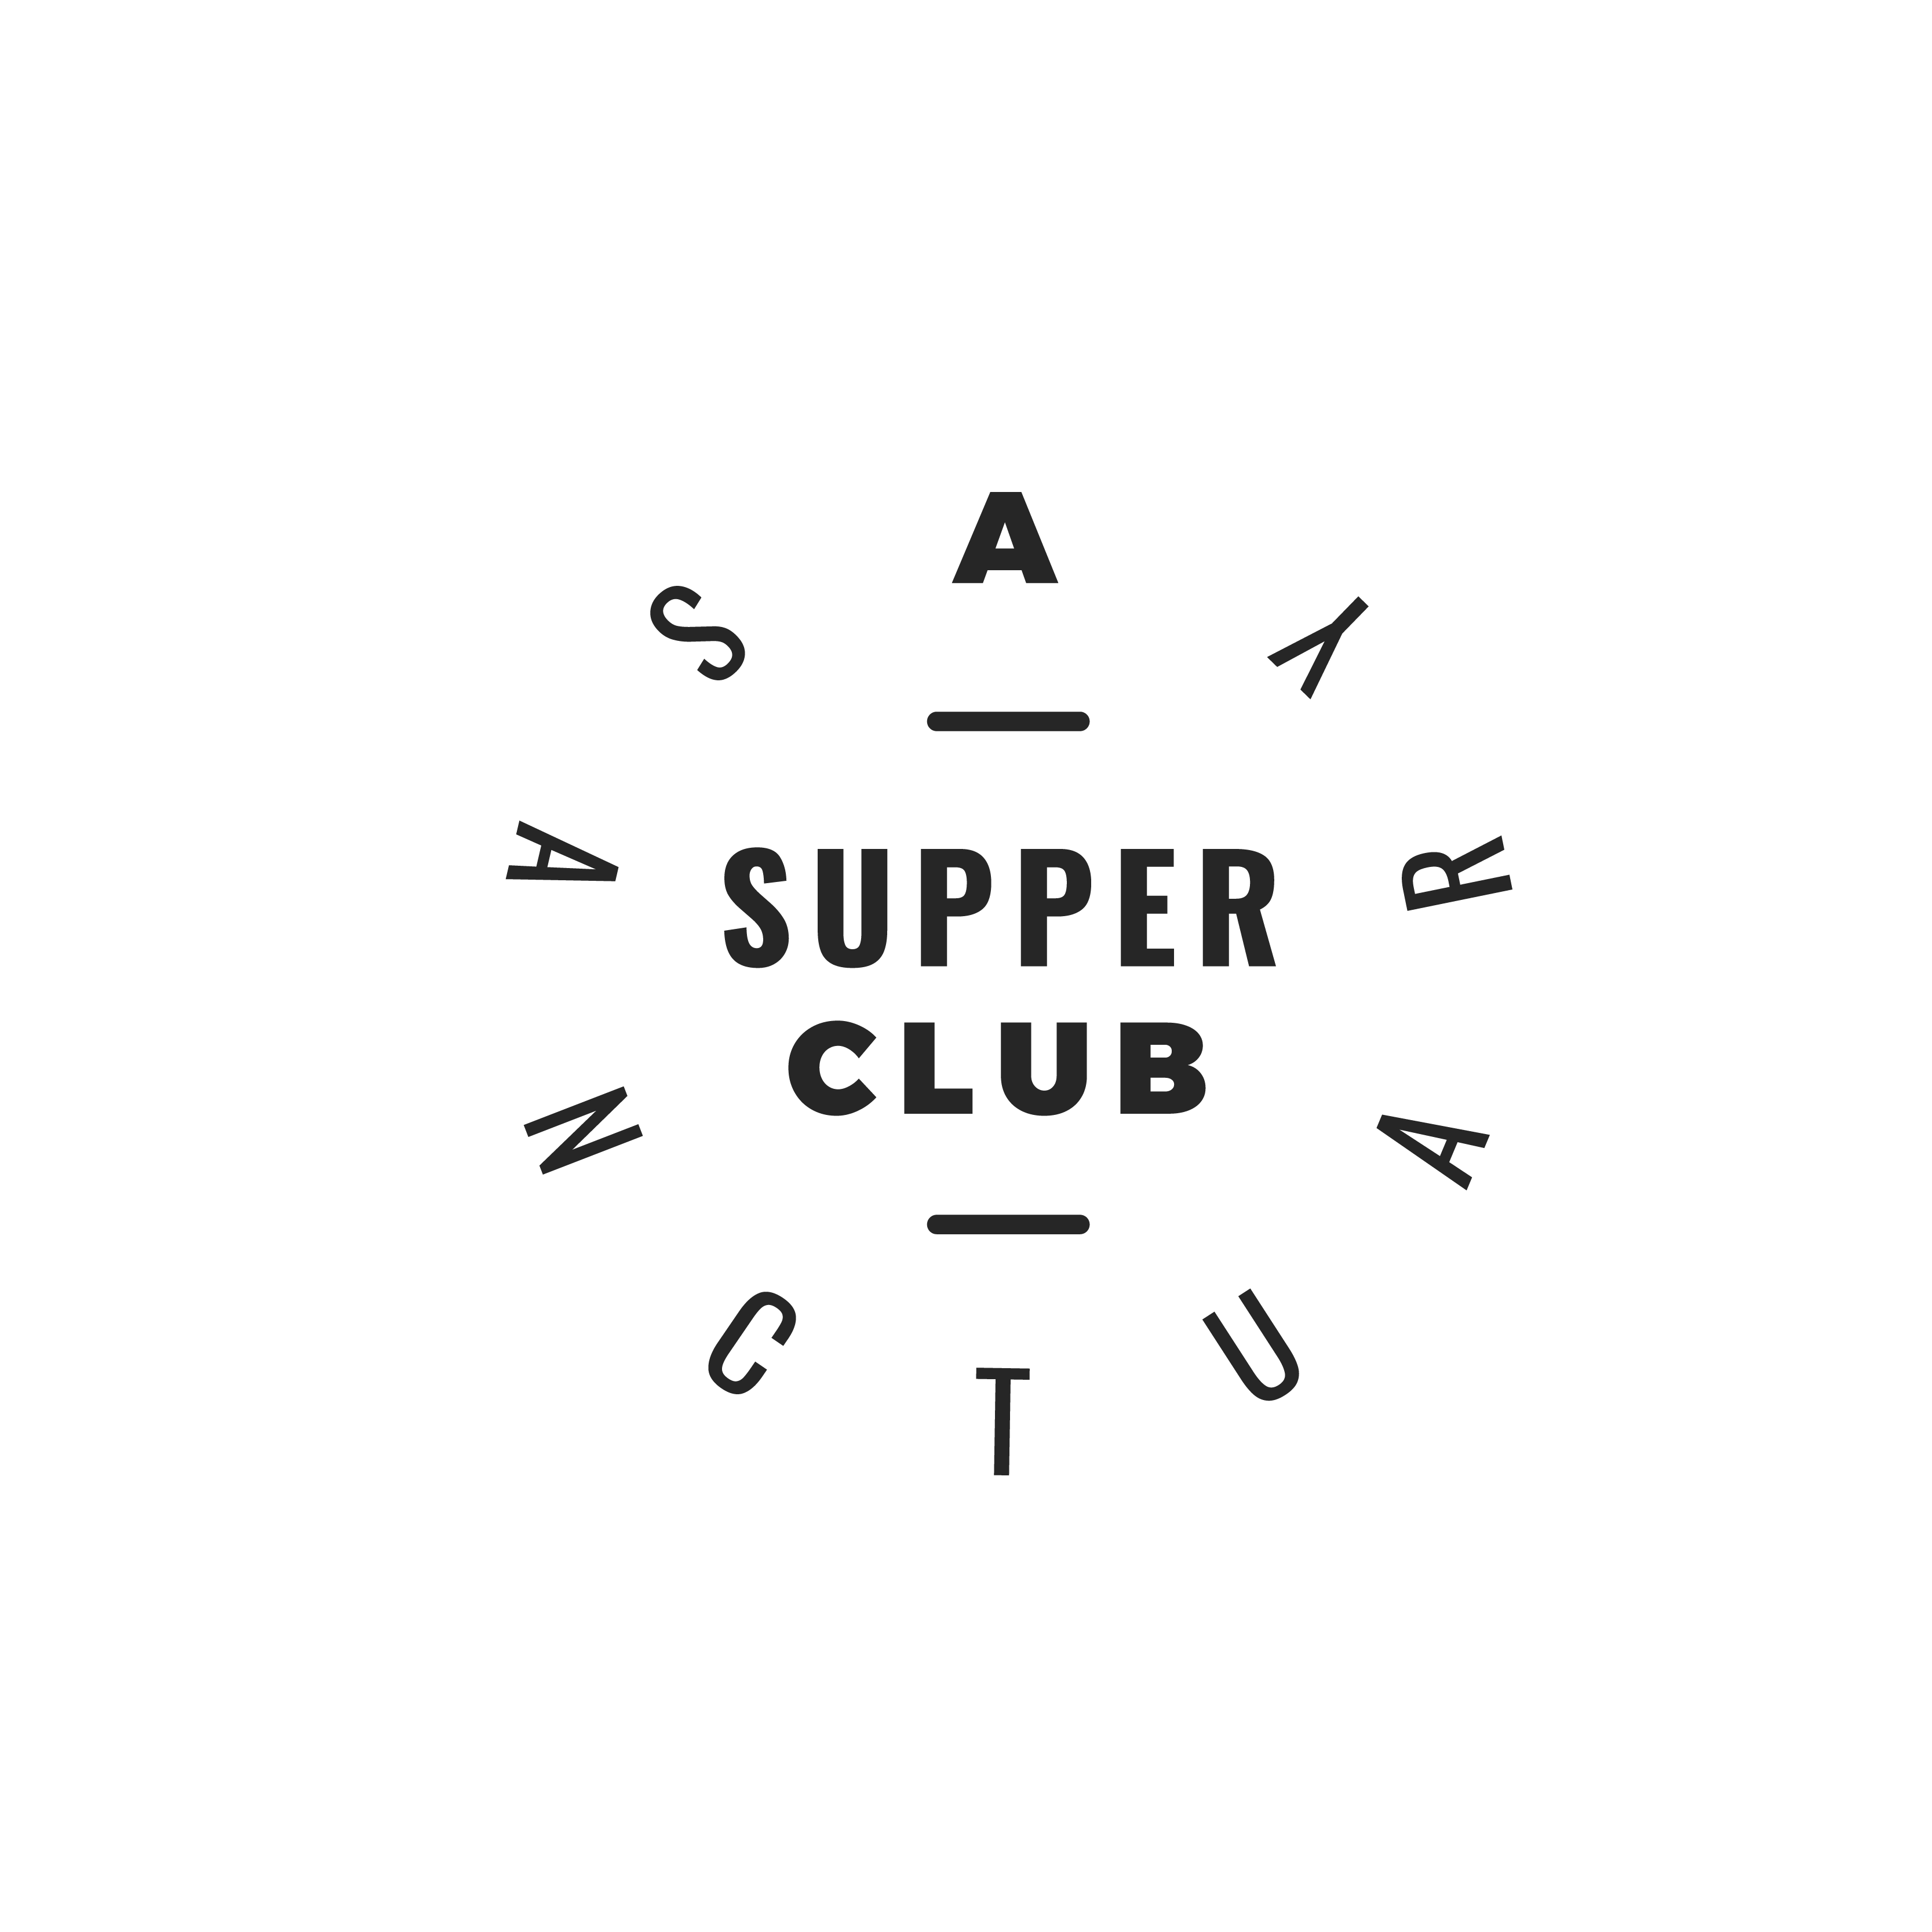 Supper Club Sanctuary